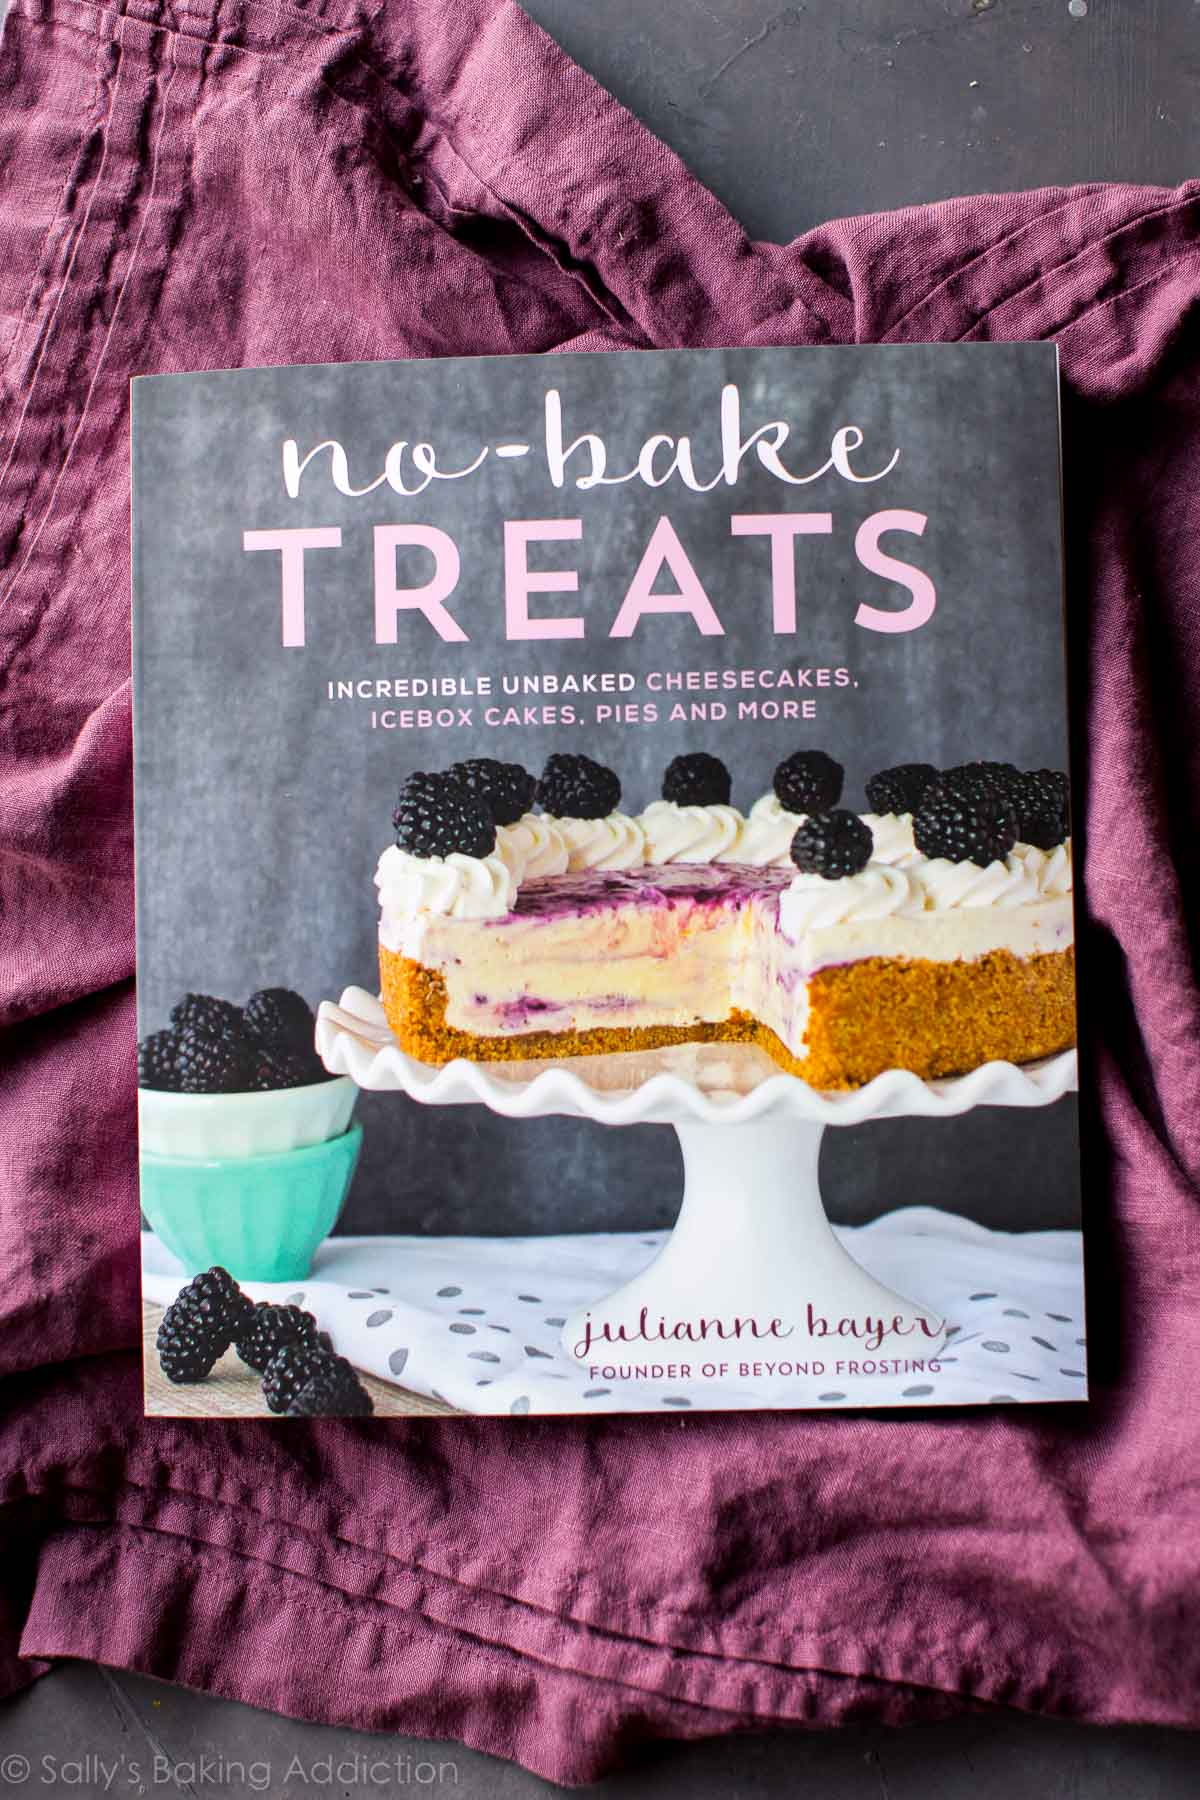 No Bake Treats: Incredible Unbaked Cheesecakes, Icebox Cakes, Pies and More by Julianne Bayer